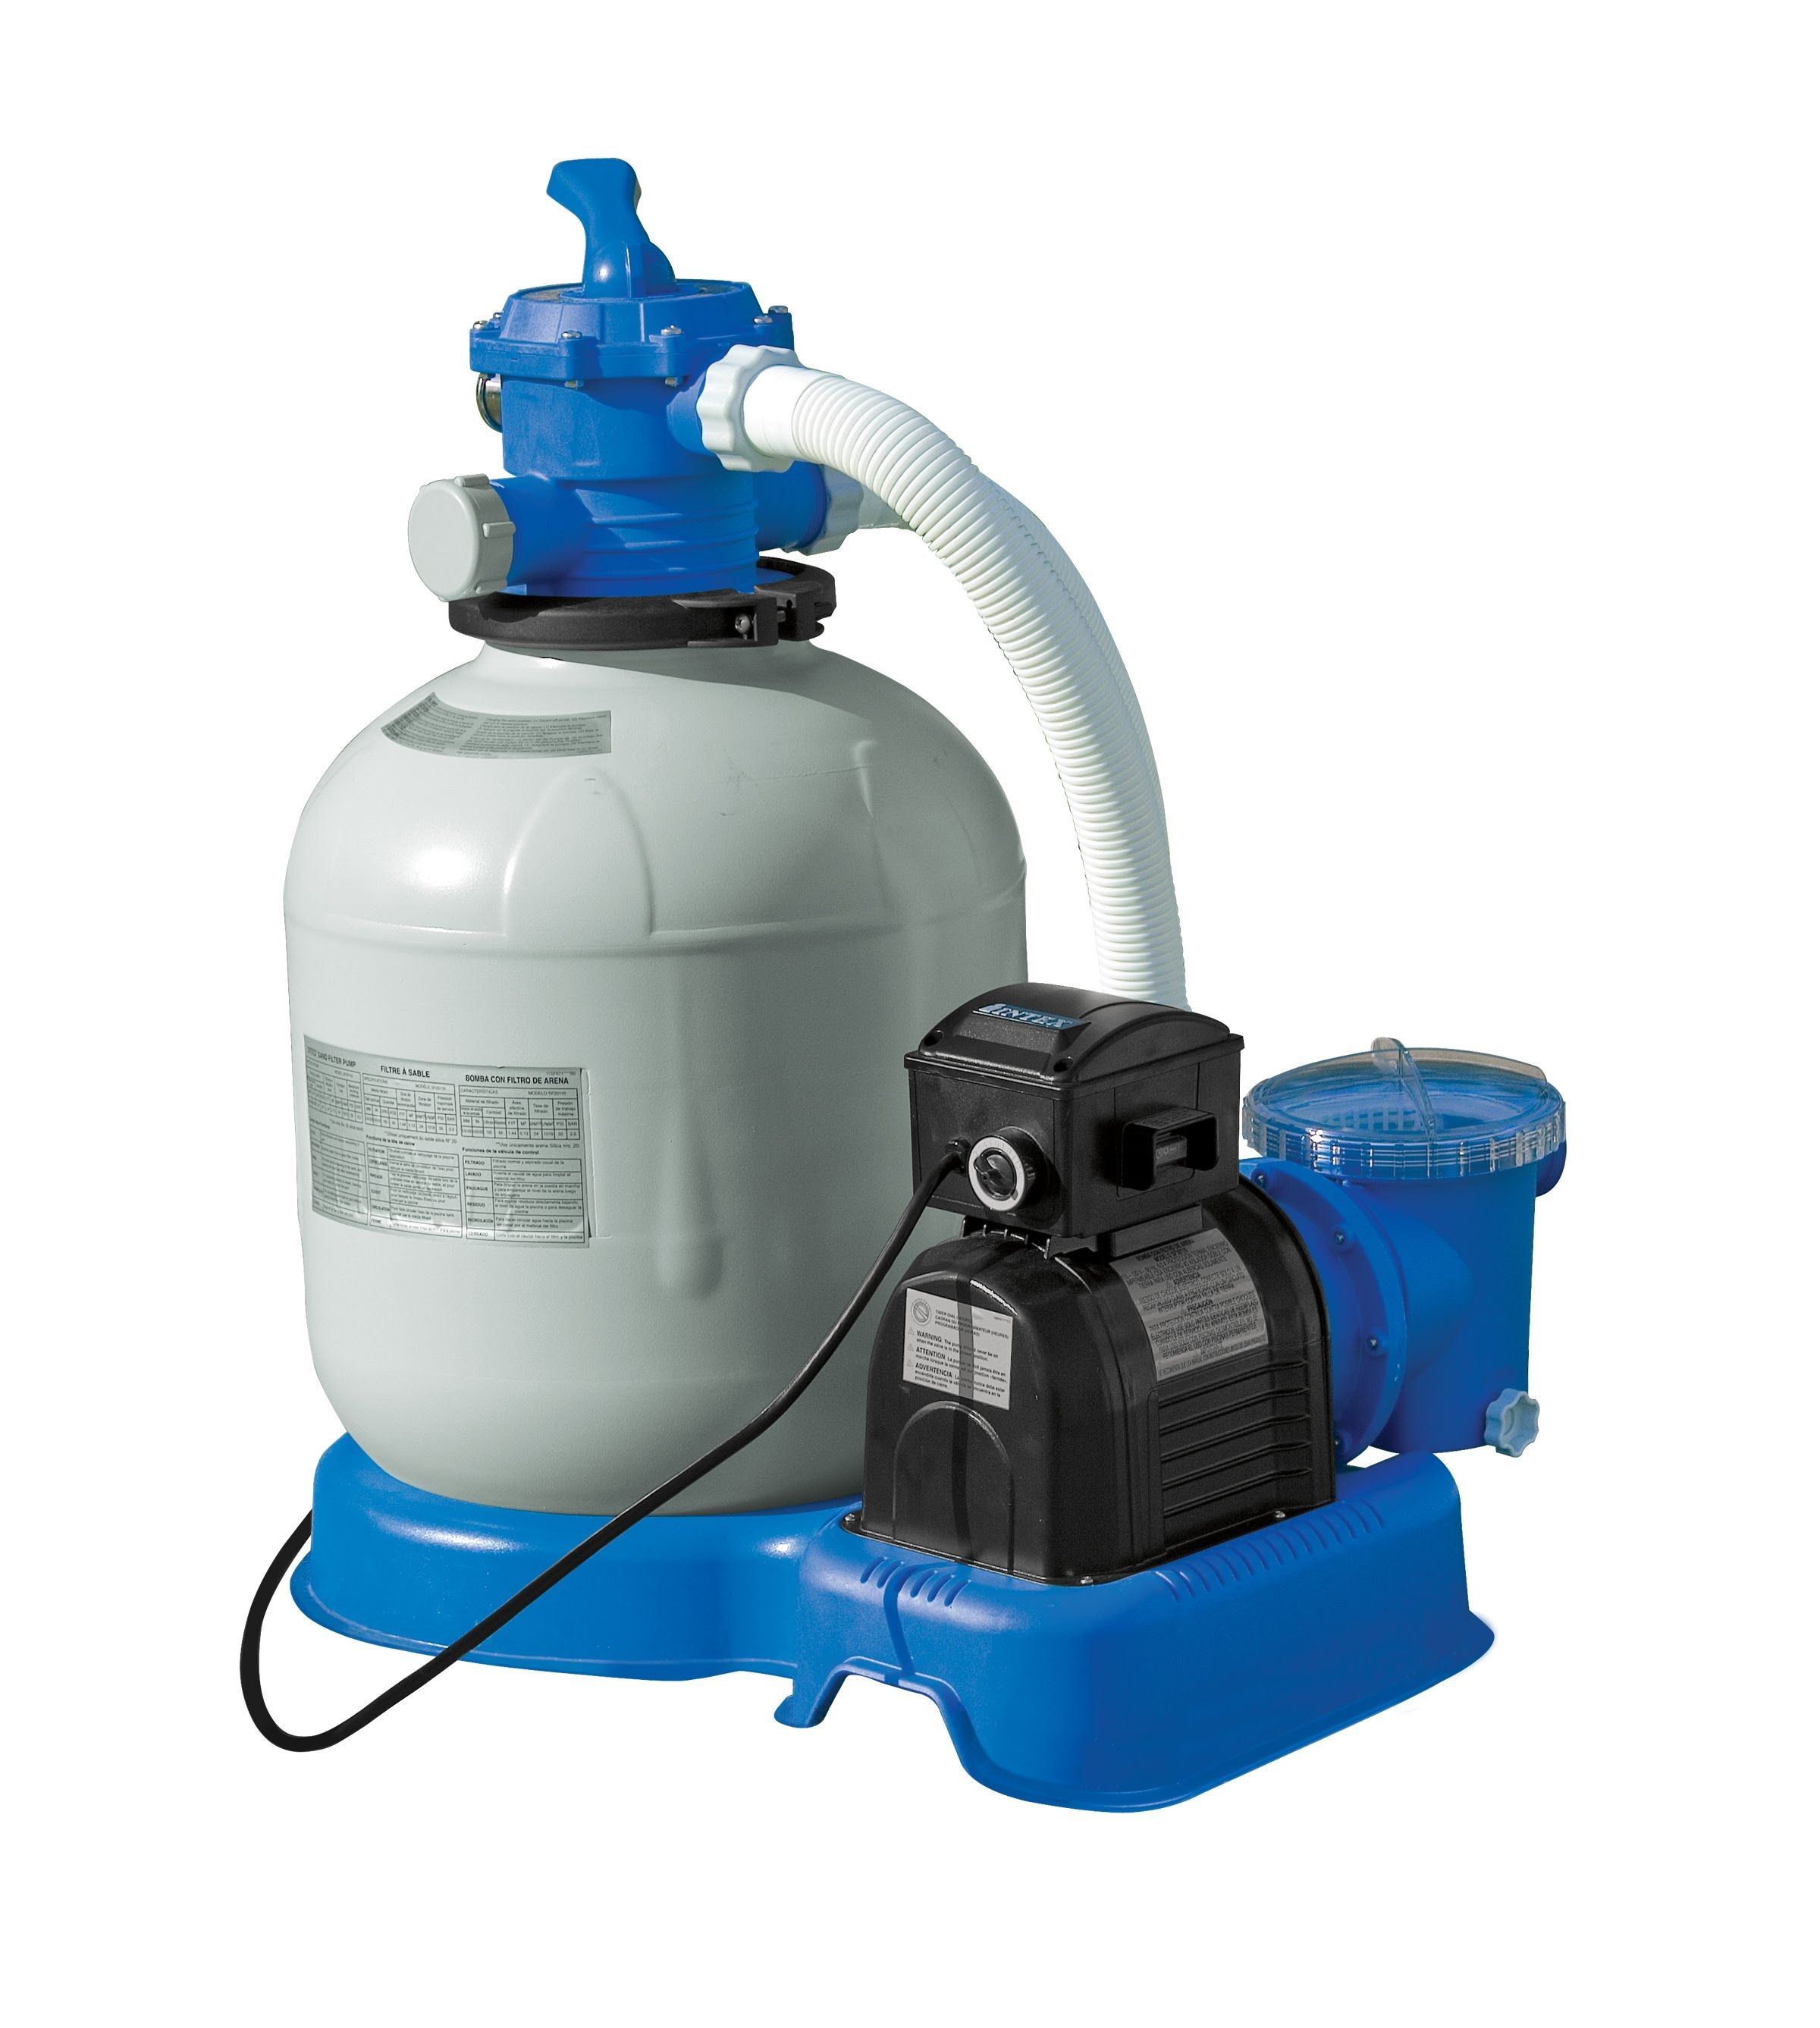 Pools Swimming Pool Sand Filters With Top Mounted Fiberglass Filter Installation Diagram Best Pumps And For Clearpro Technology Three Replacing